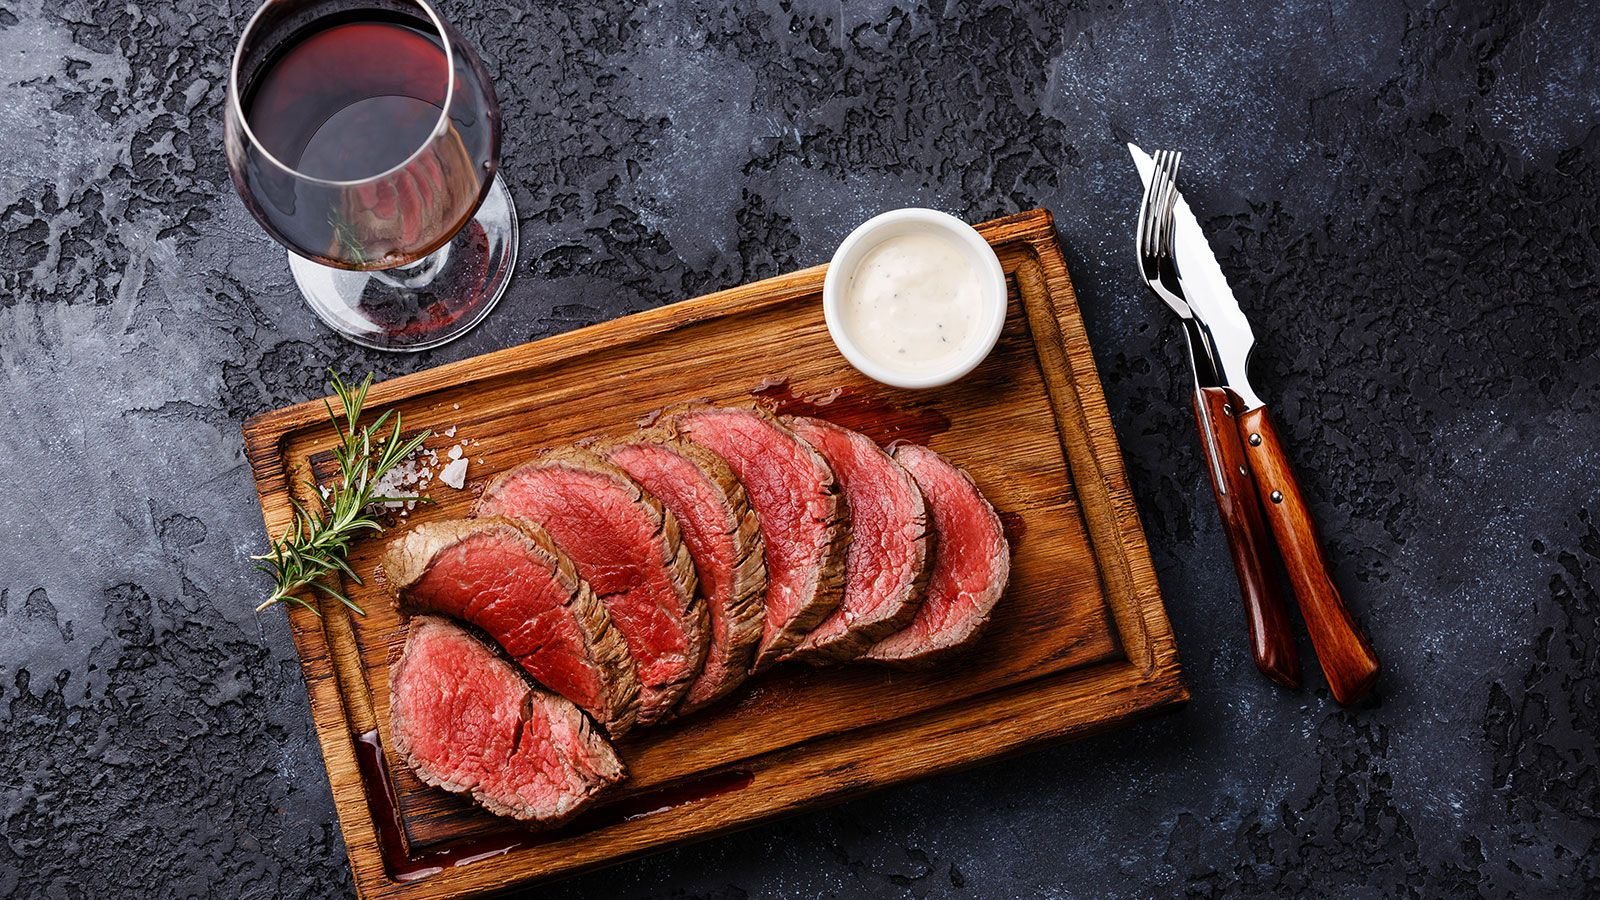 Horseradish Sauce Recipe The Fresh Market Recipe Beef Tenderloin Red Wine Sauce Slow Cooked Beef